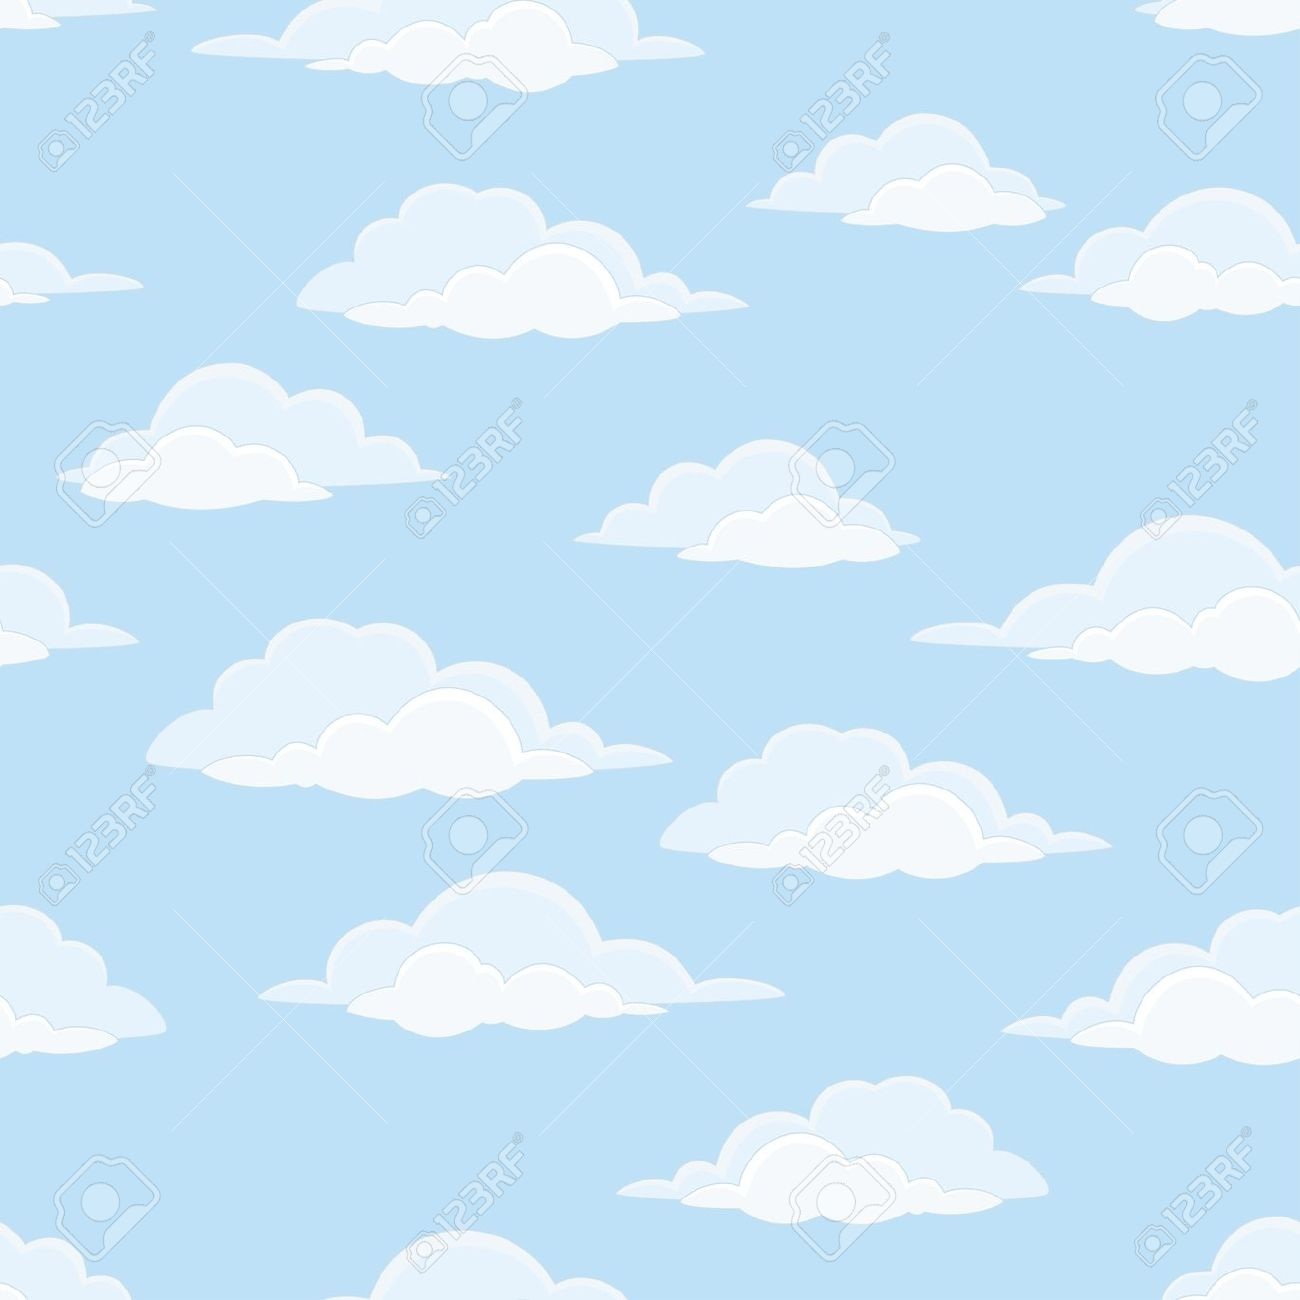 Blue sky with clouds background clipart.